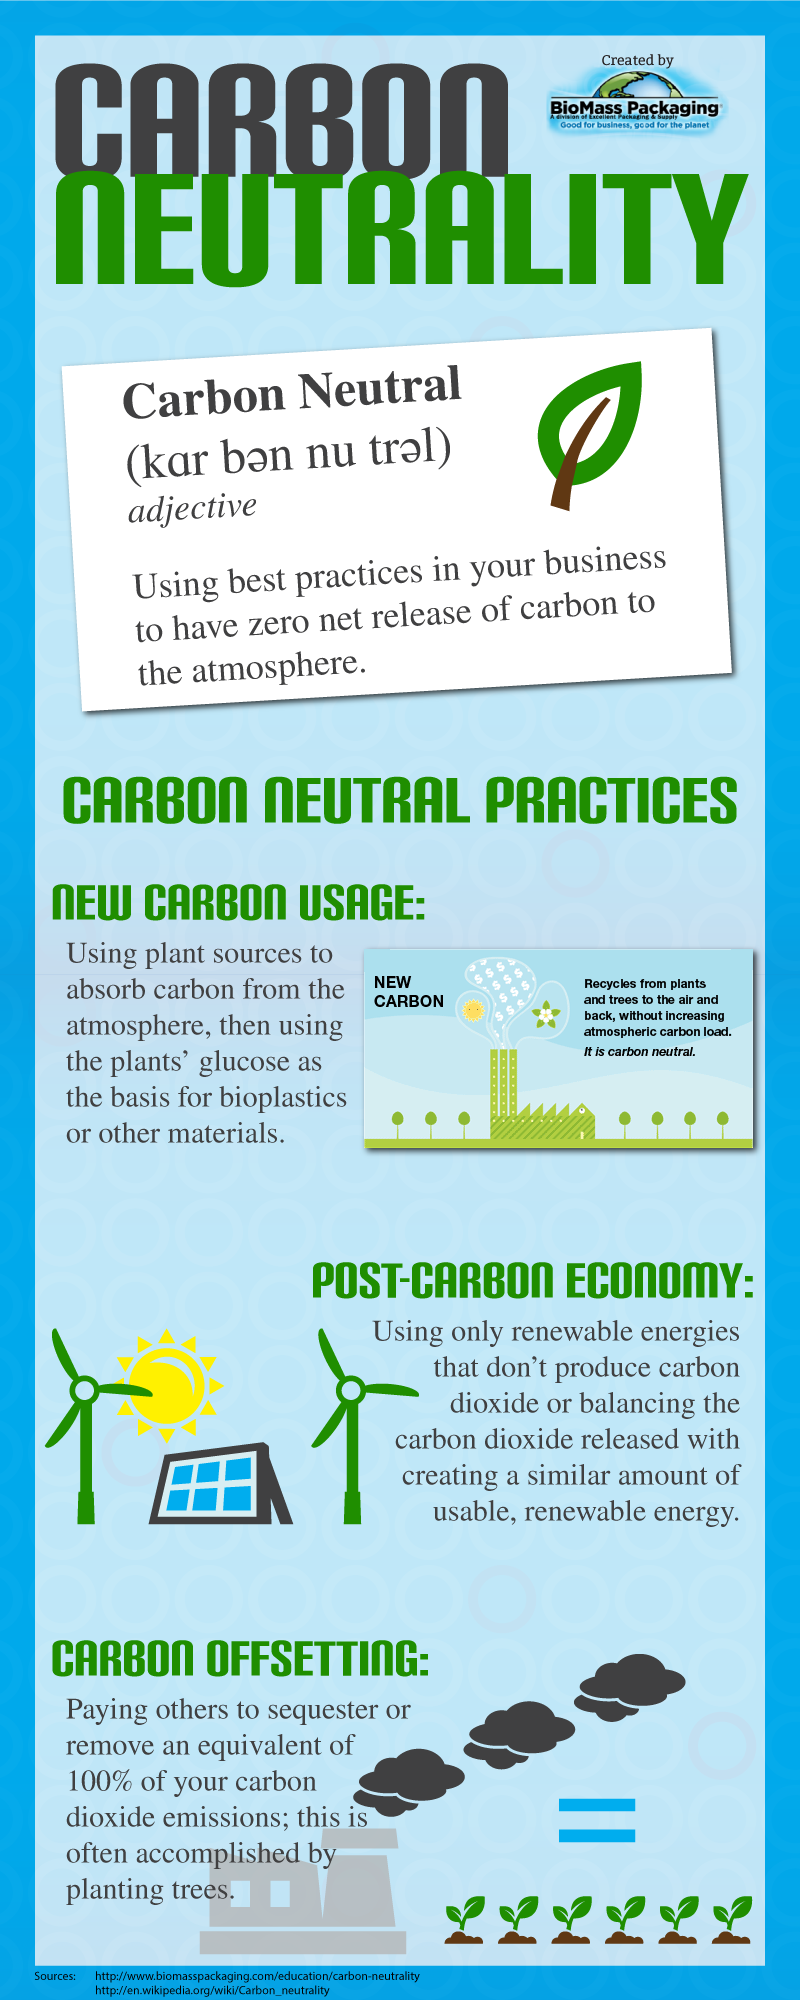 Be carbon neutral